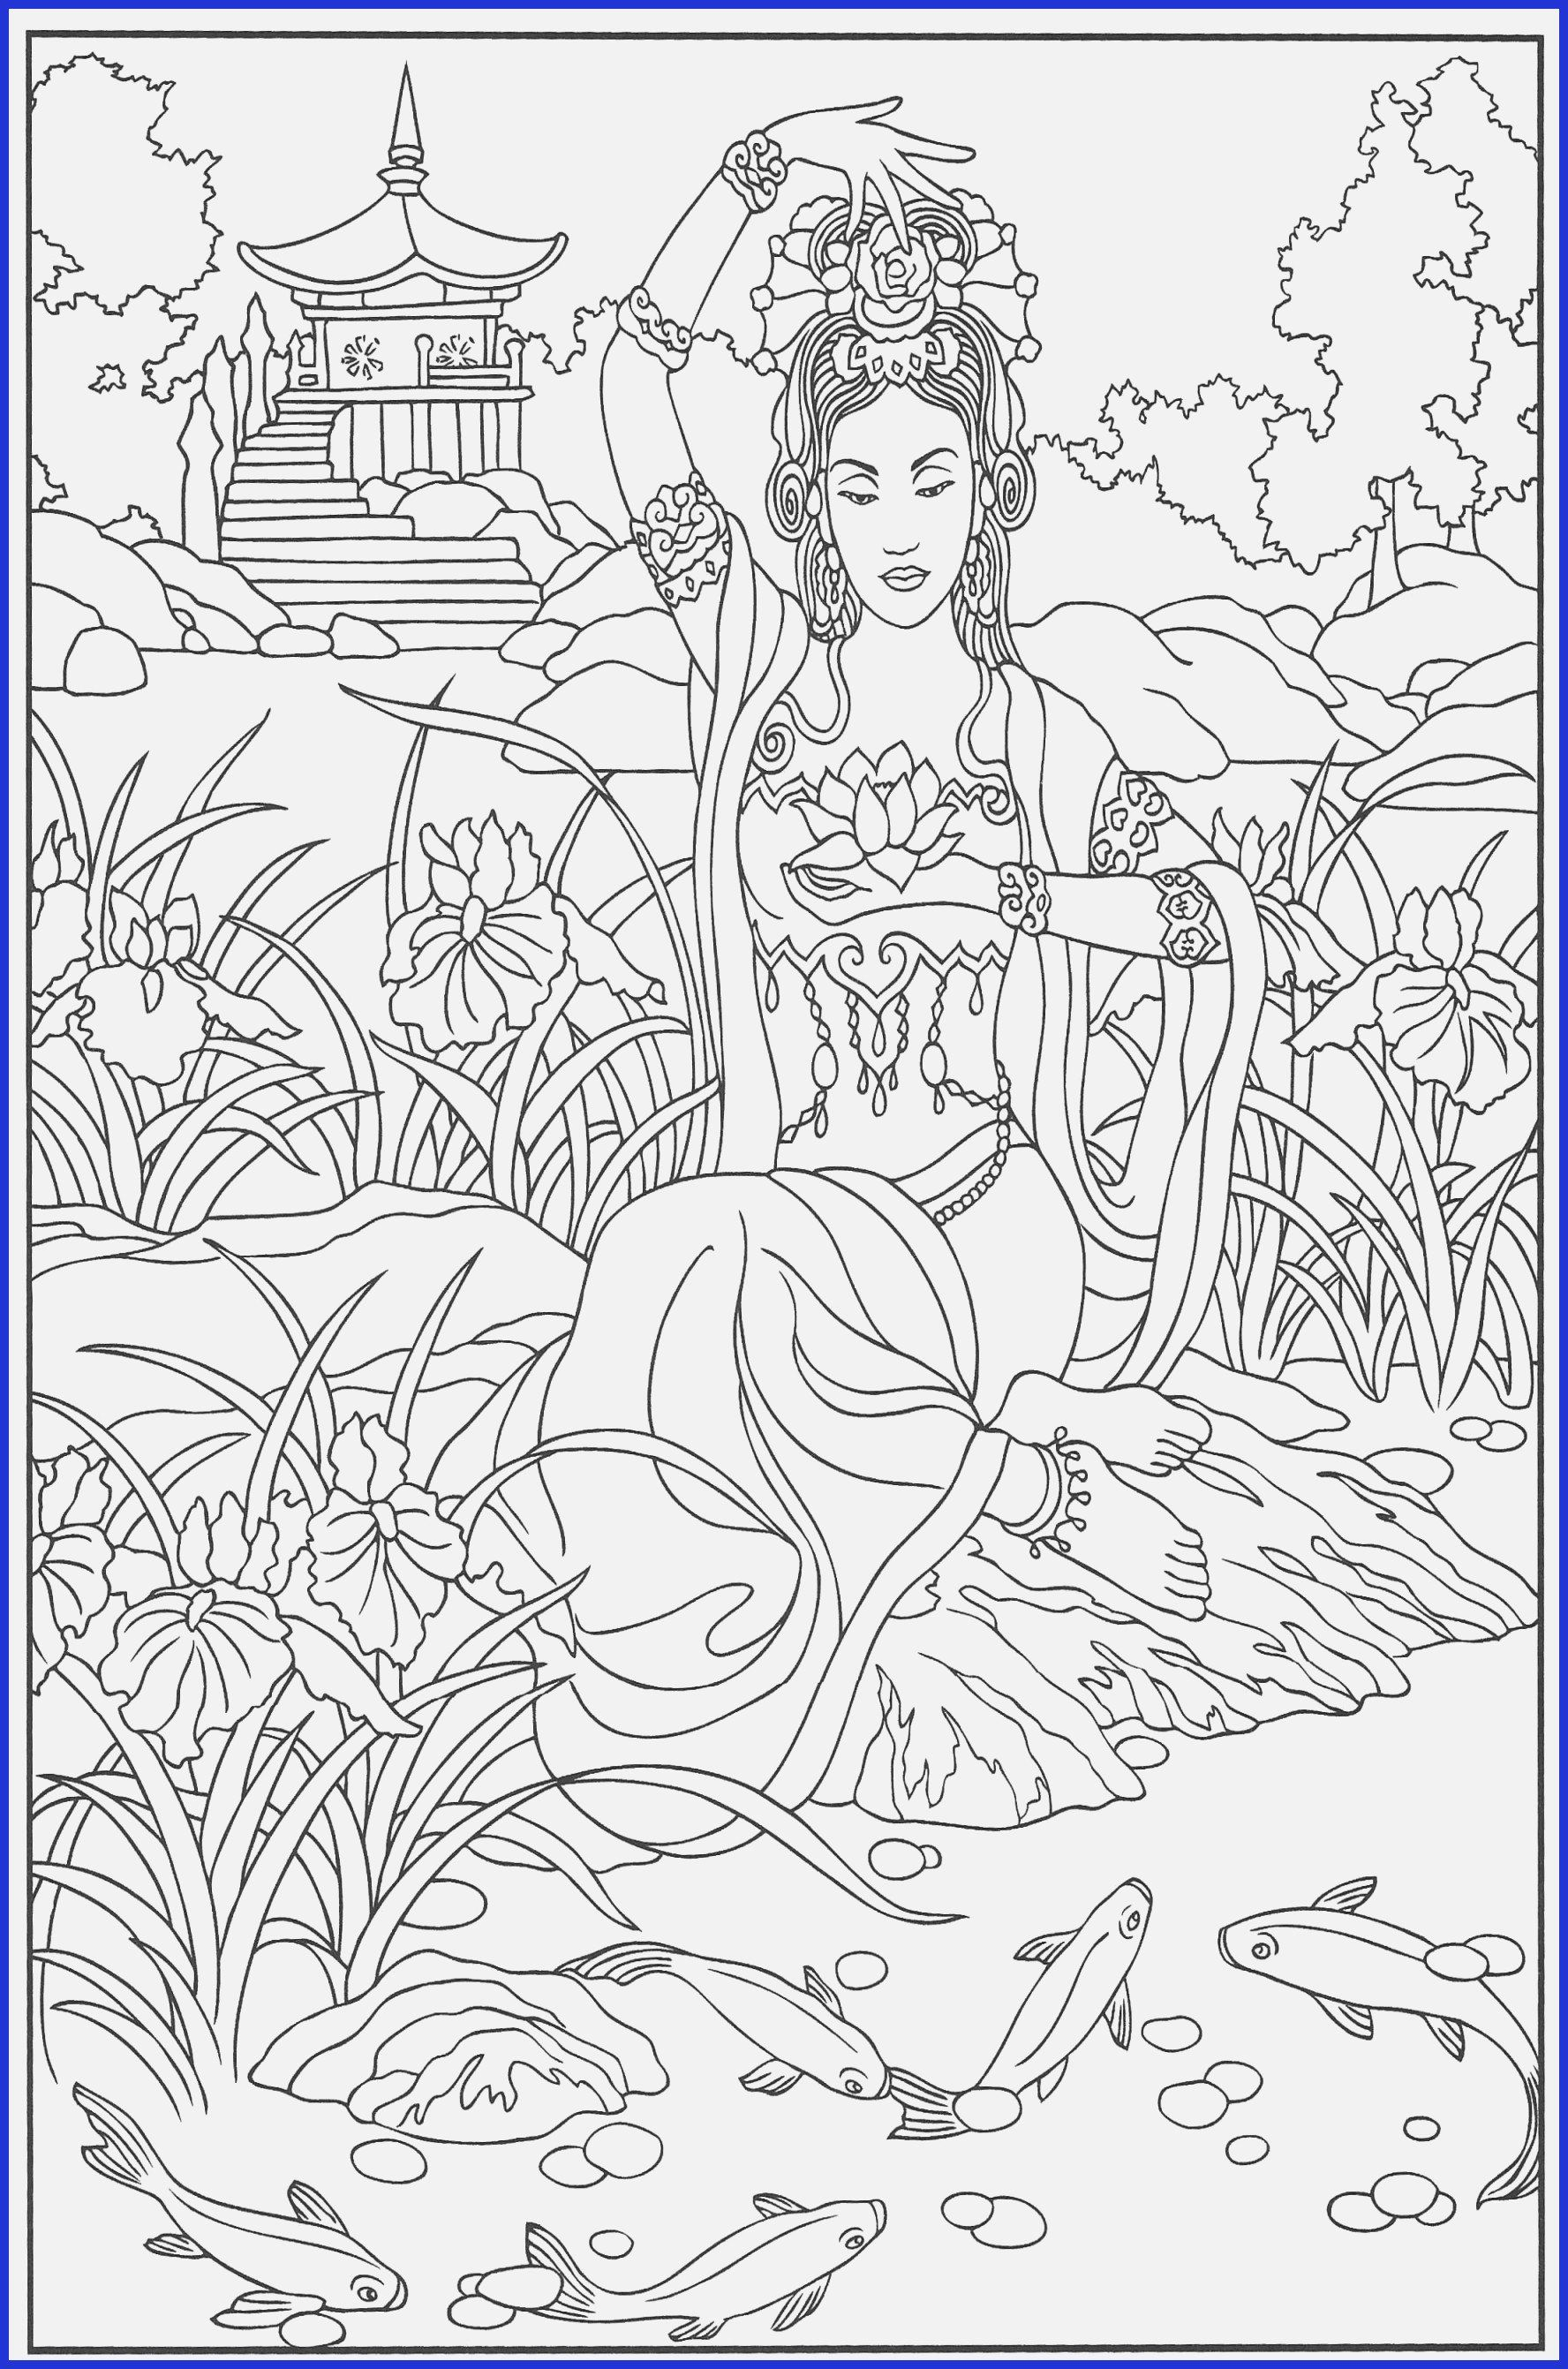 Coloring Pages For Teenagers Unique 13 Best Coloring Pages